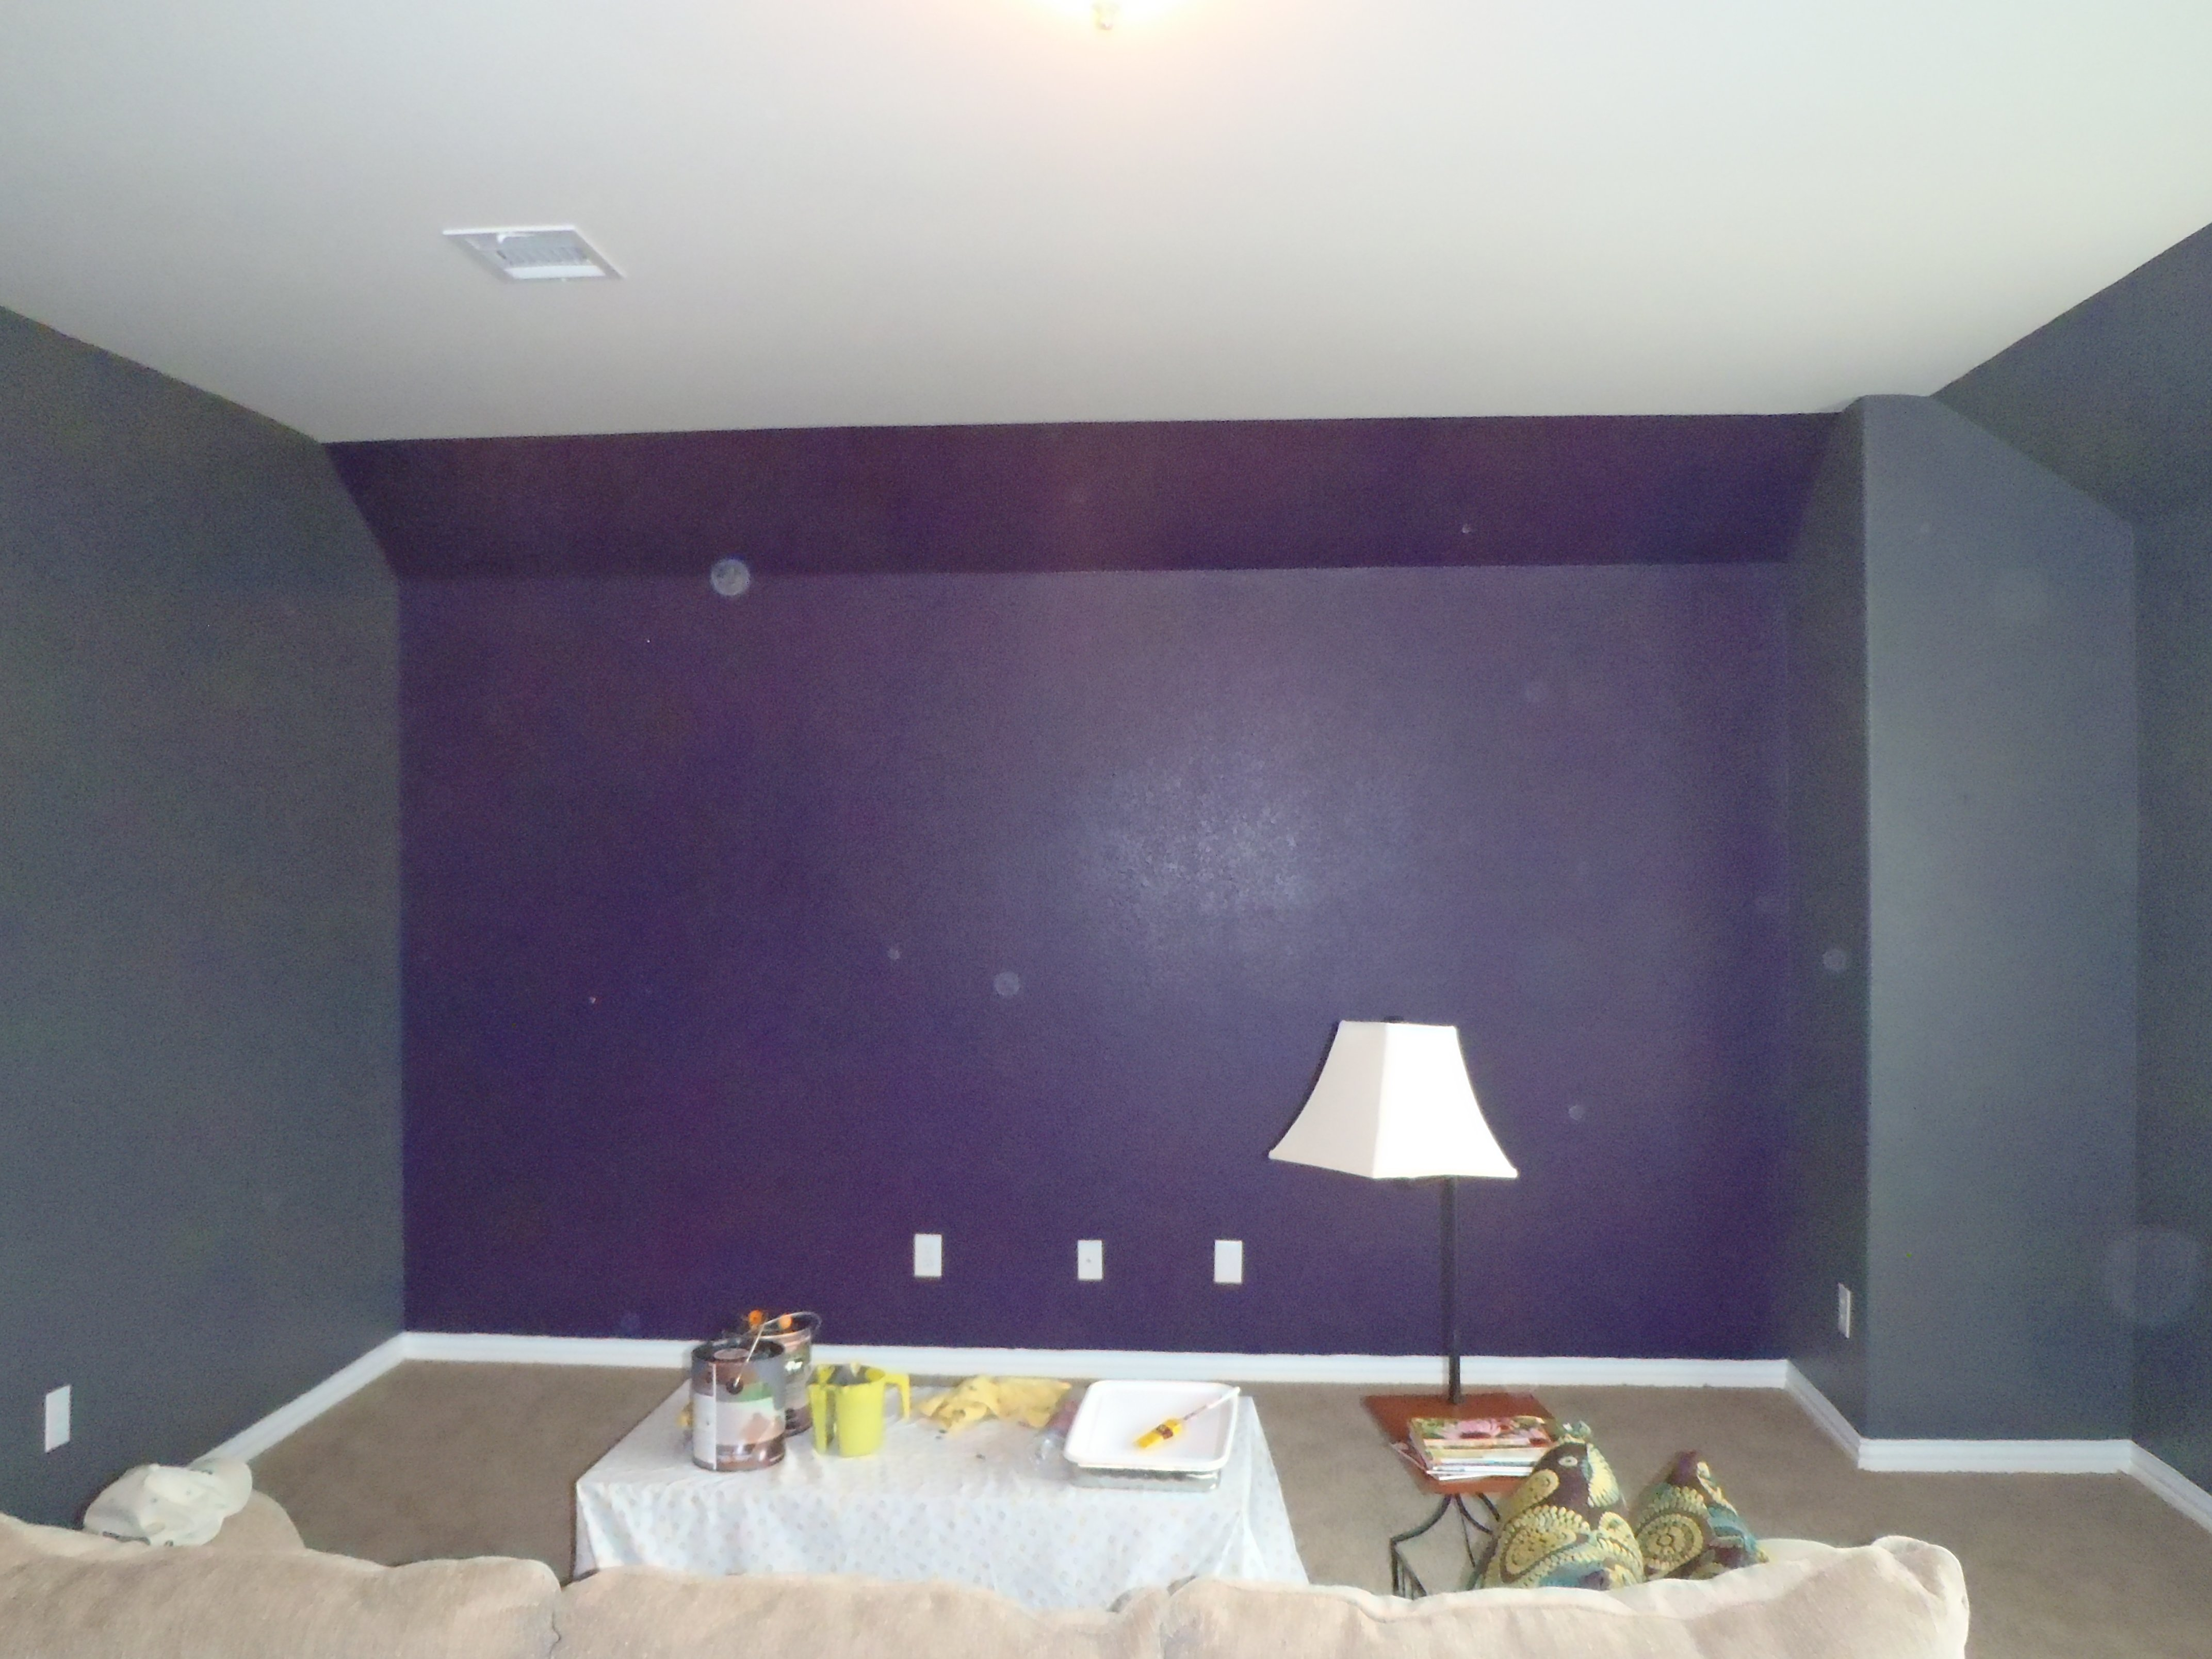 Wall paint techniques two colors - Wall Paint Techniques Two Colors